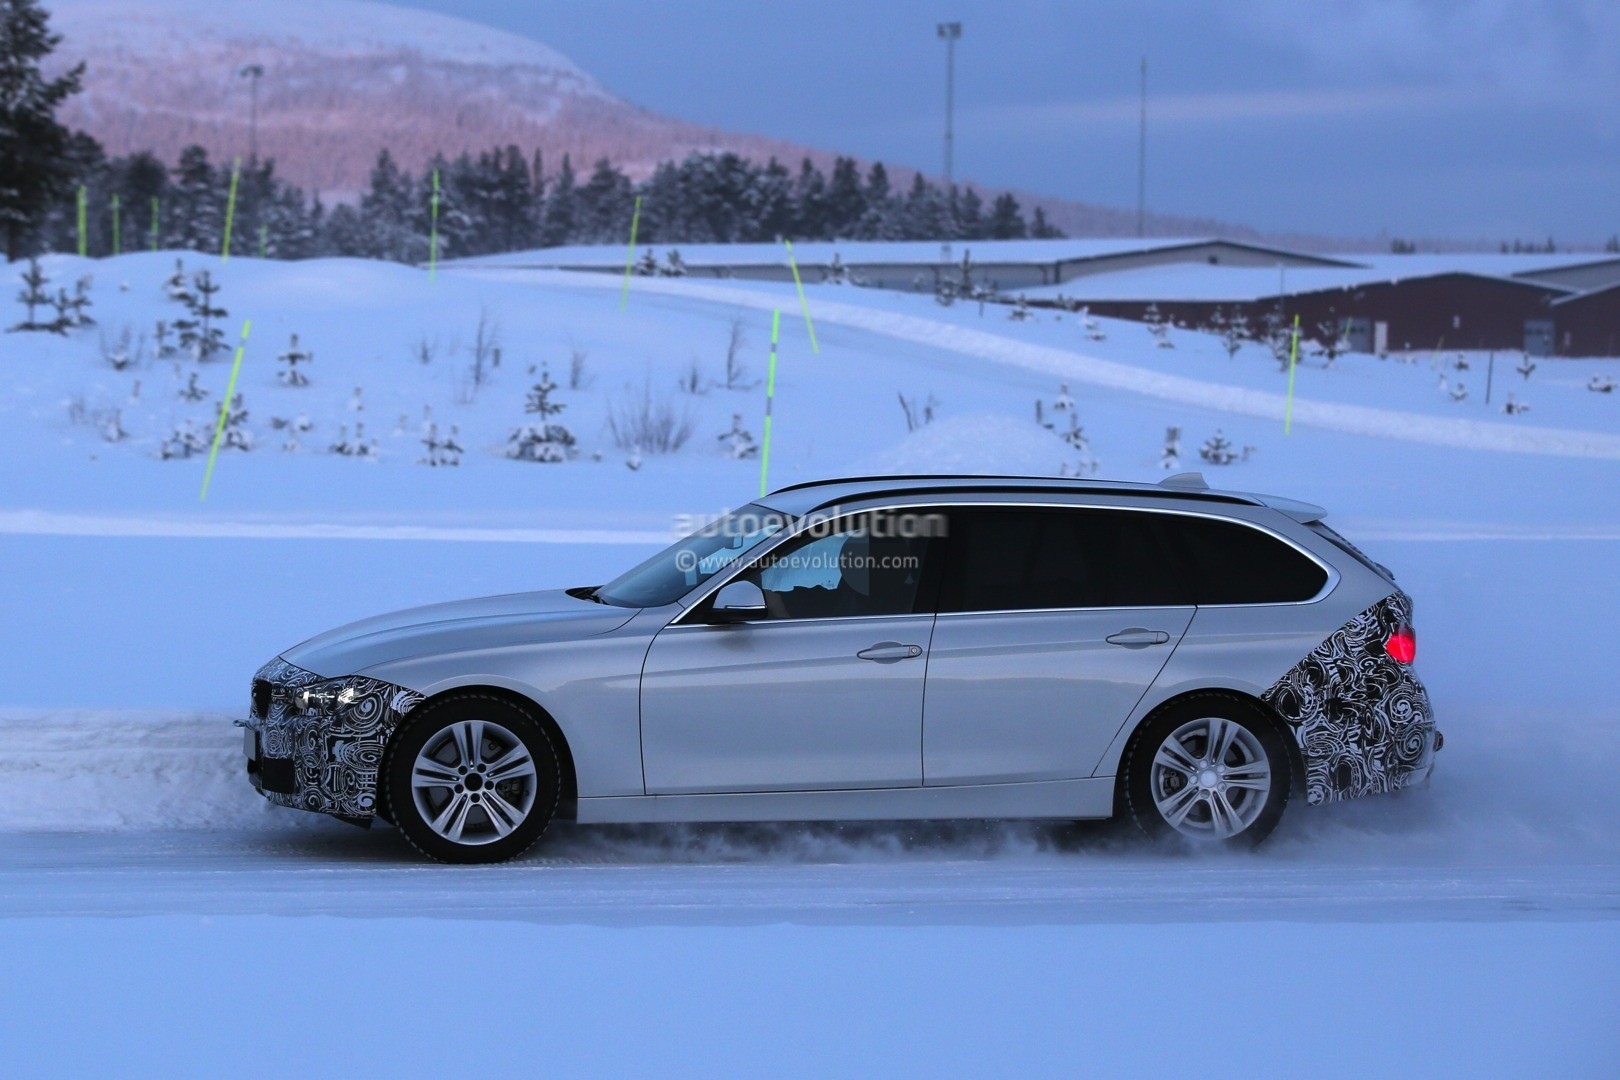 2016 bmw f31 3 series touring facelift spied testing in heavy snow autoevolution. Black Bedroom Furniture Sets. Home Design Ideas